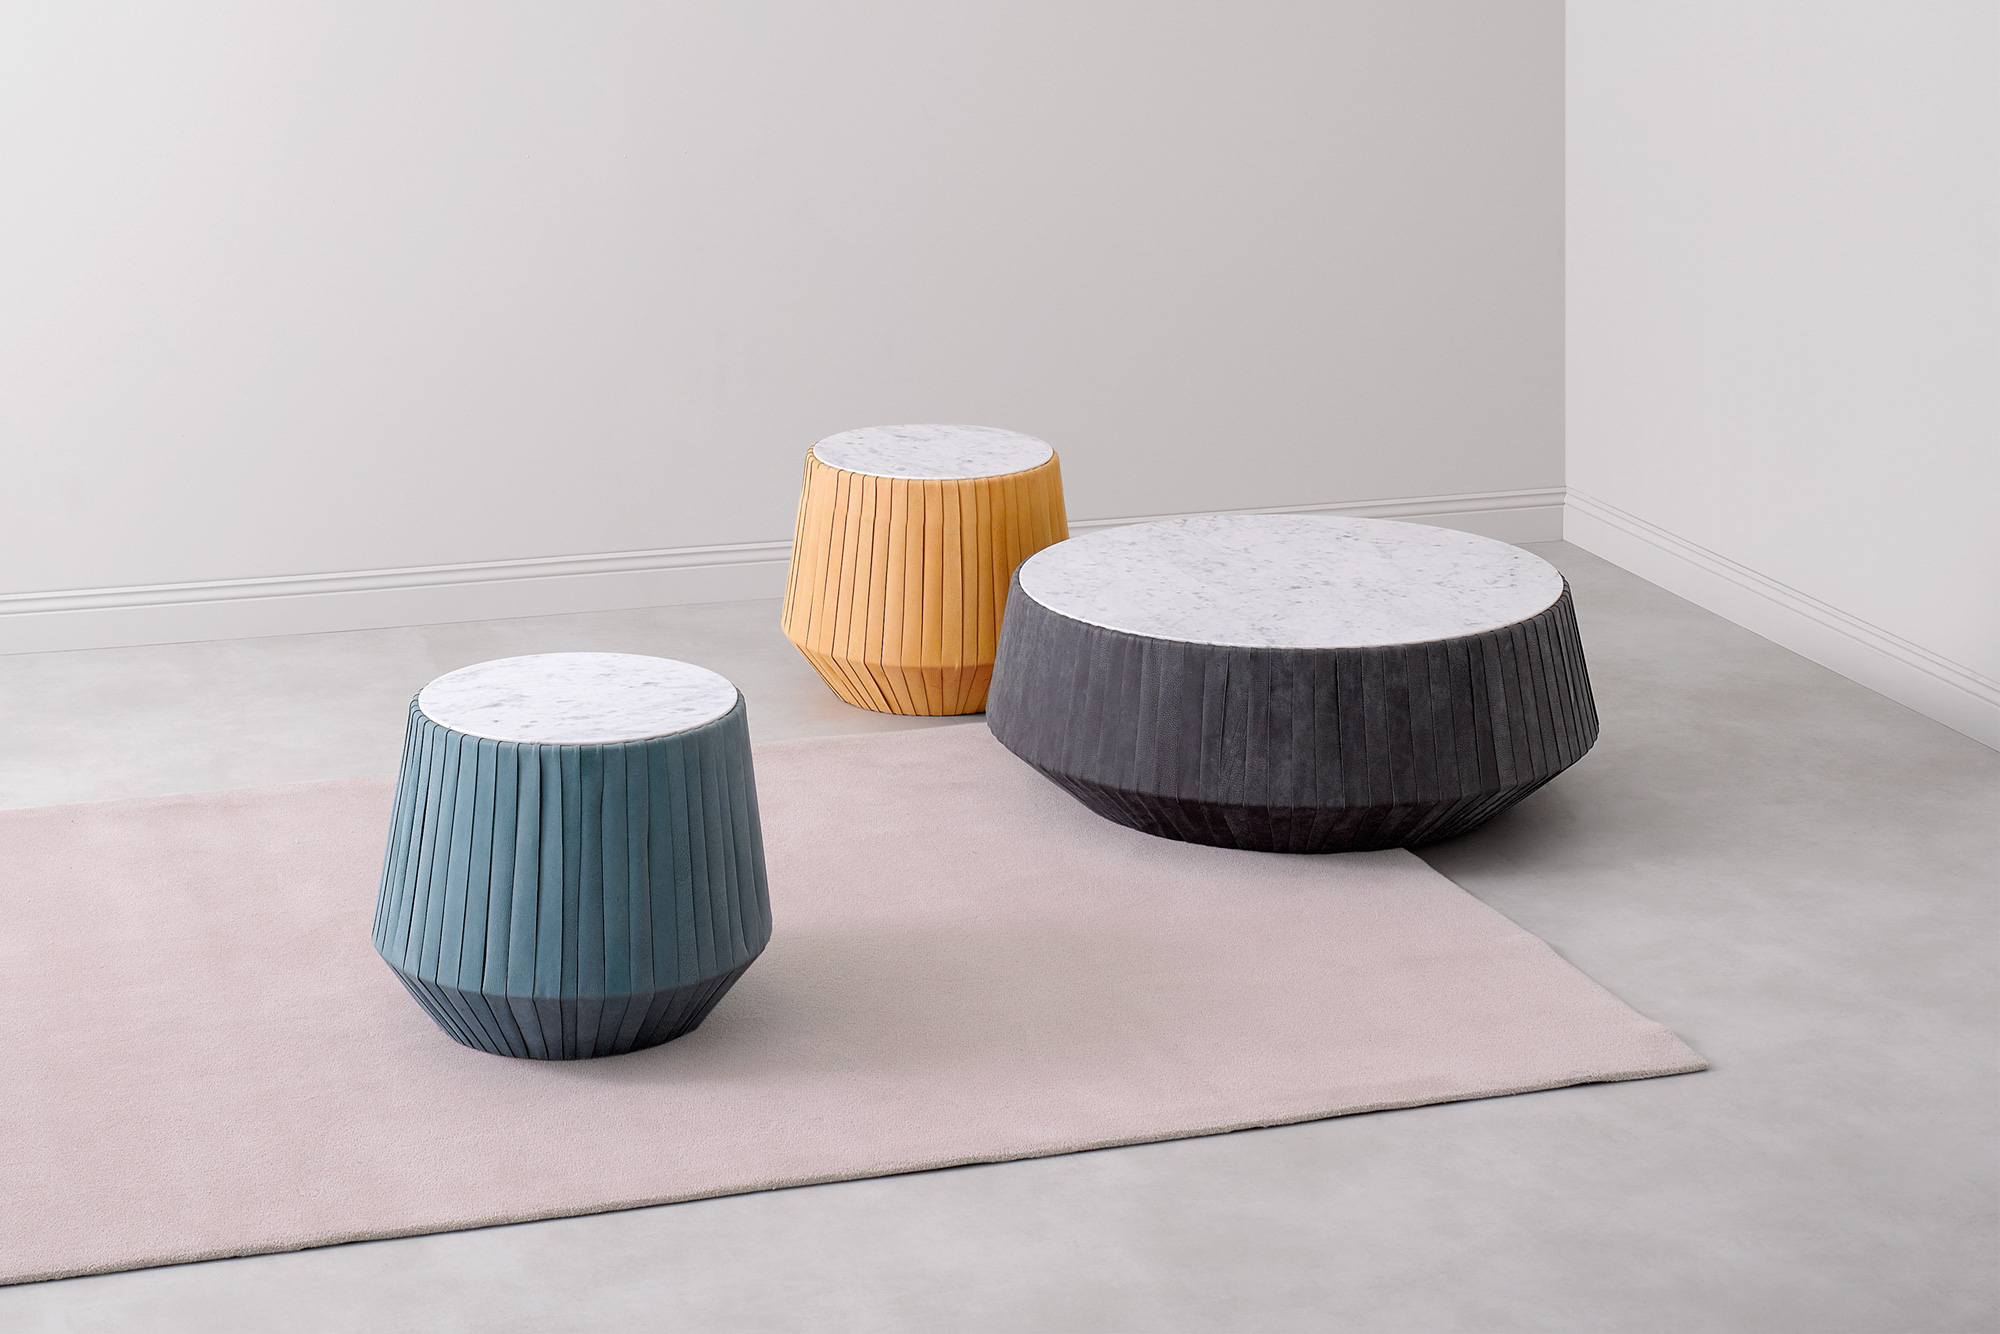 Hoop tavolino. Hoop small table. Paola Zani: arredamento di design made in italy. Maestria artigianale e ricerca formale. Paola Zani: Furniture design made in Italy. Craftsmanship and research.